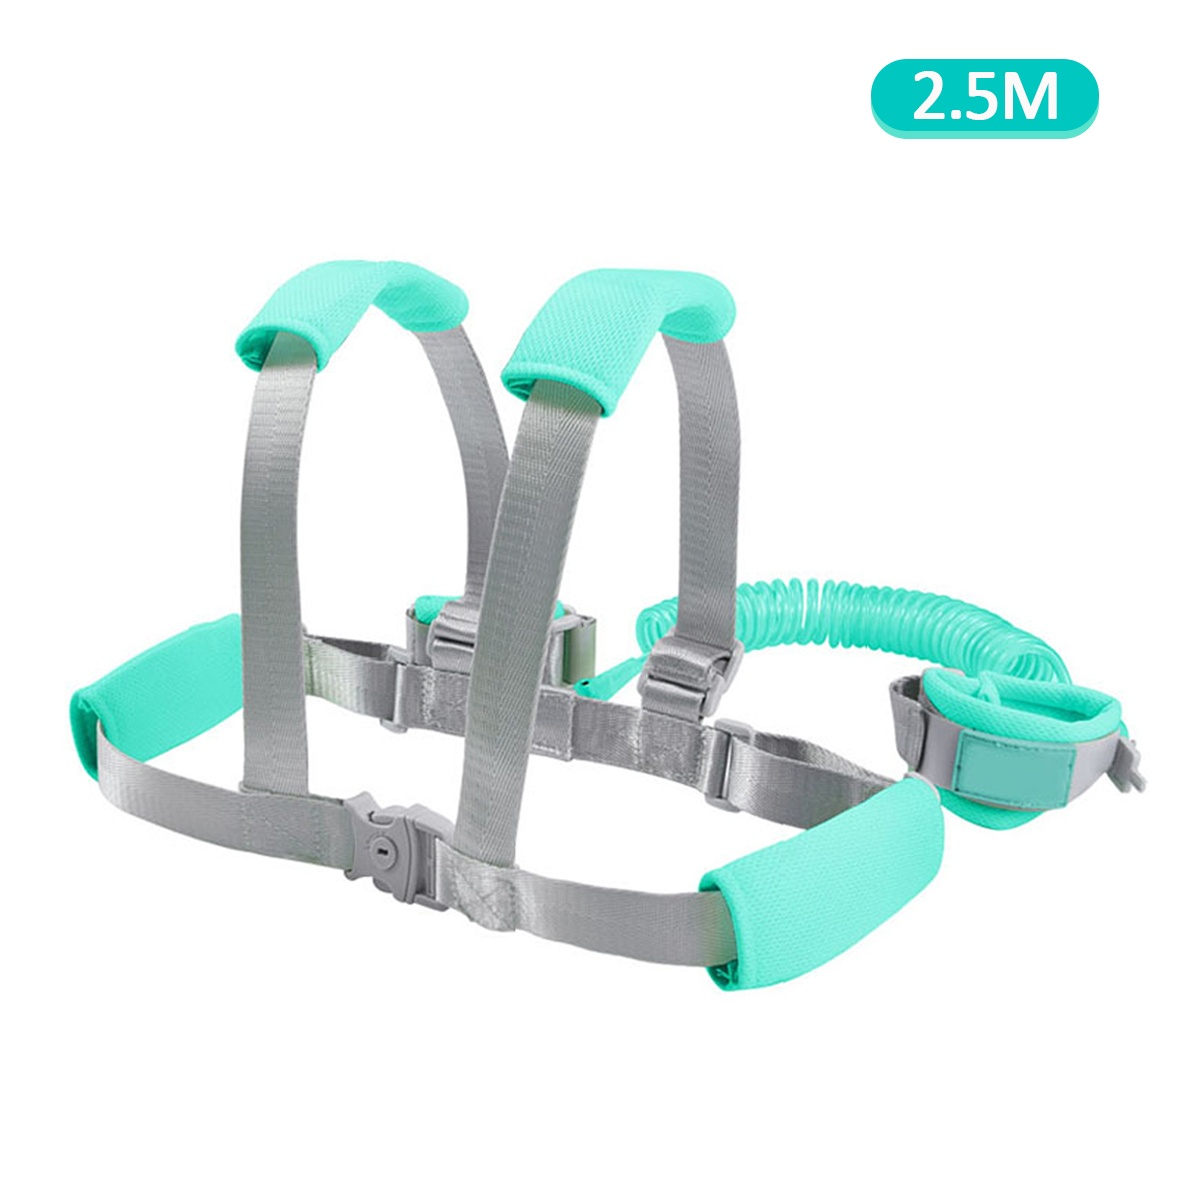 2/2.5M Toddler Kids Baby Anti-lost Safety Walking Harness + Wrist Link Hand Strap Leash